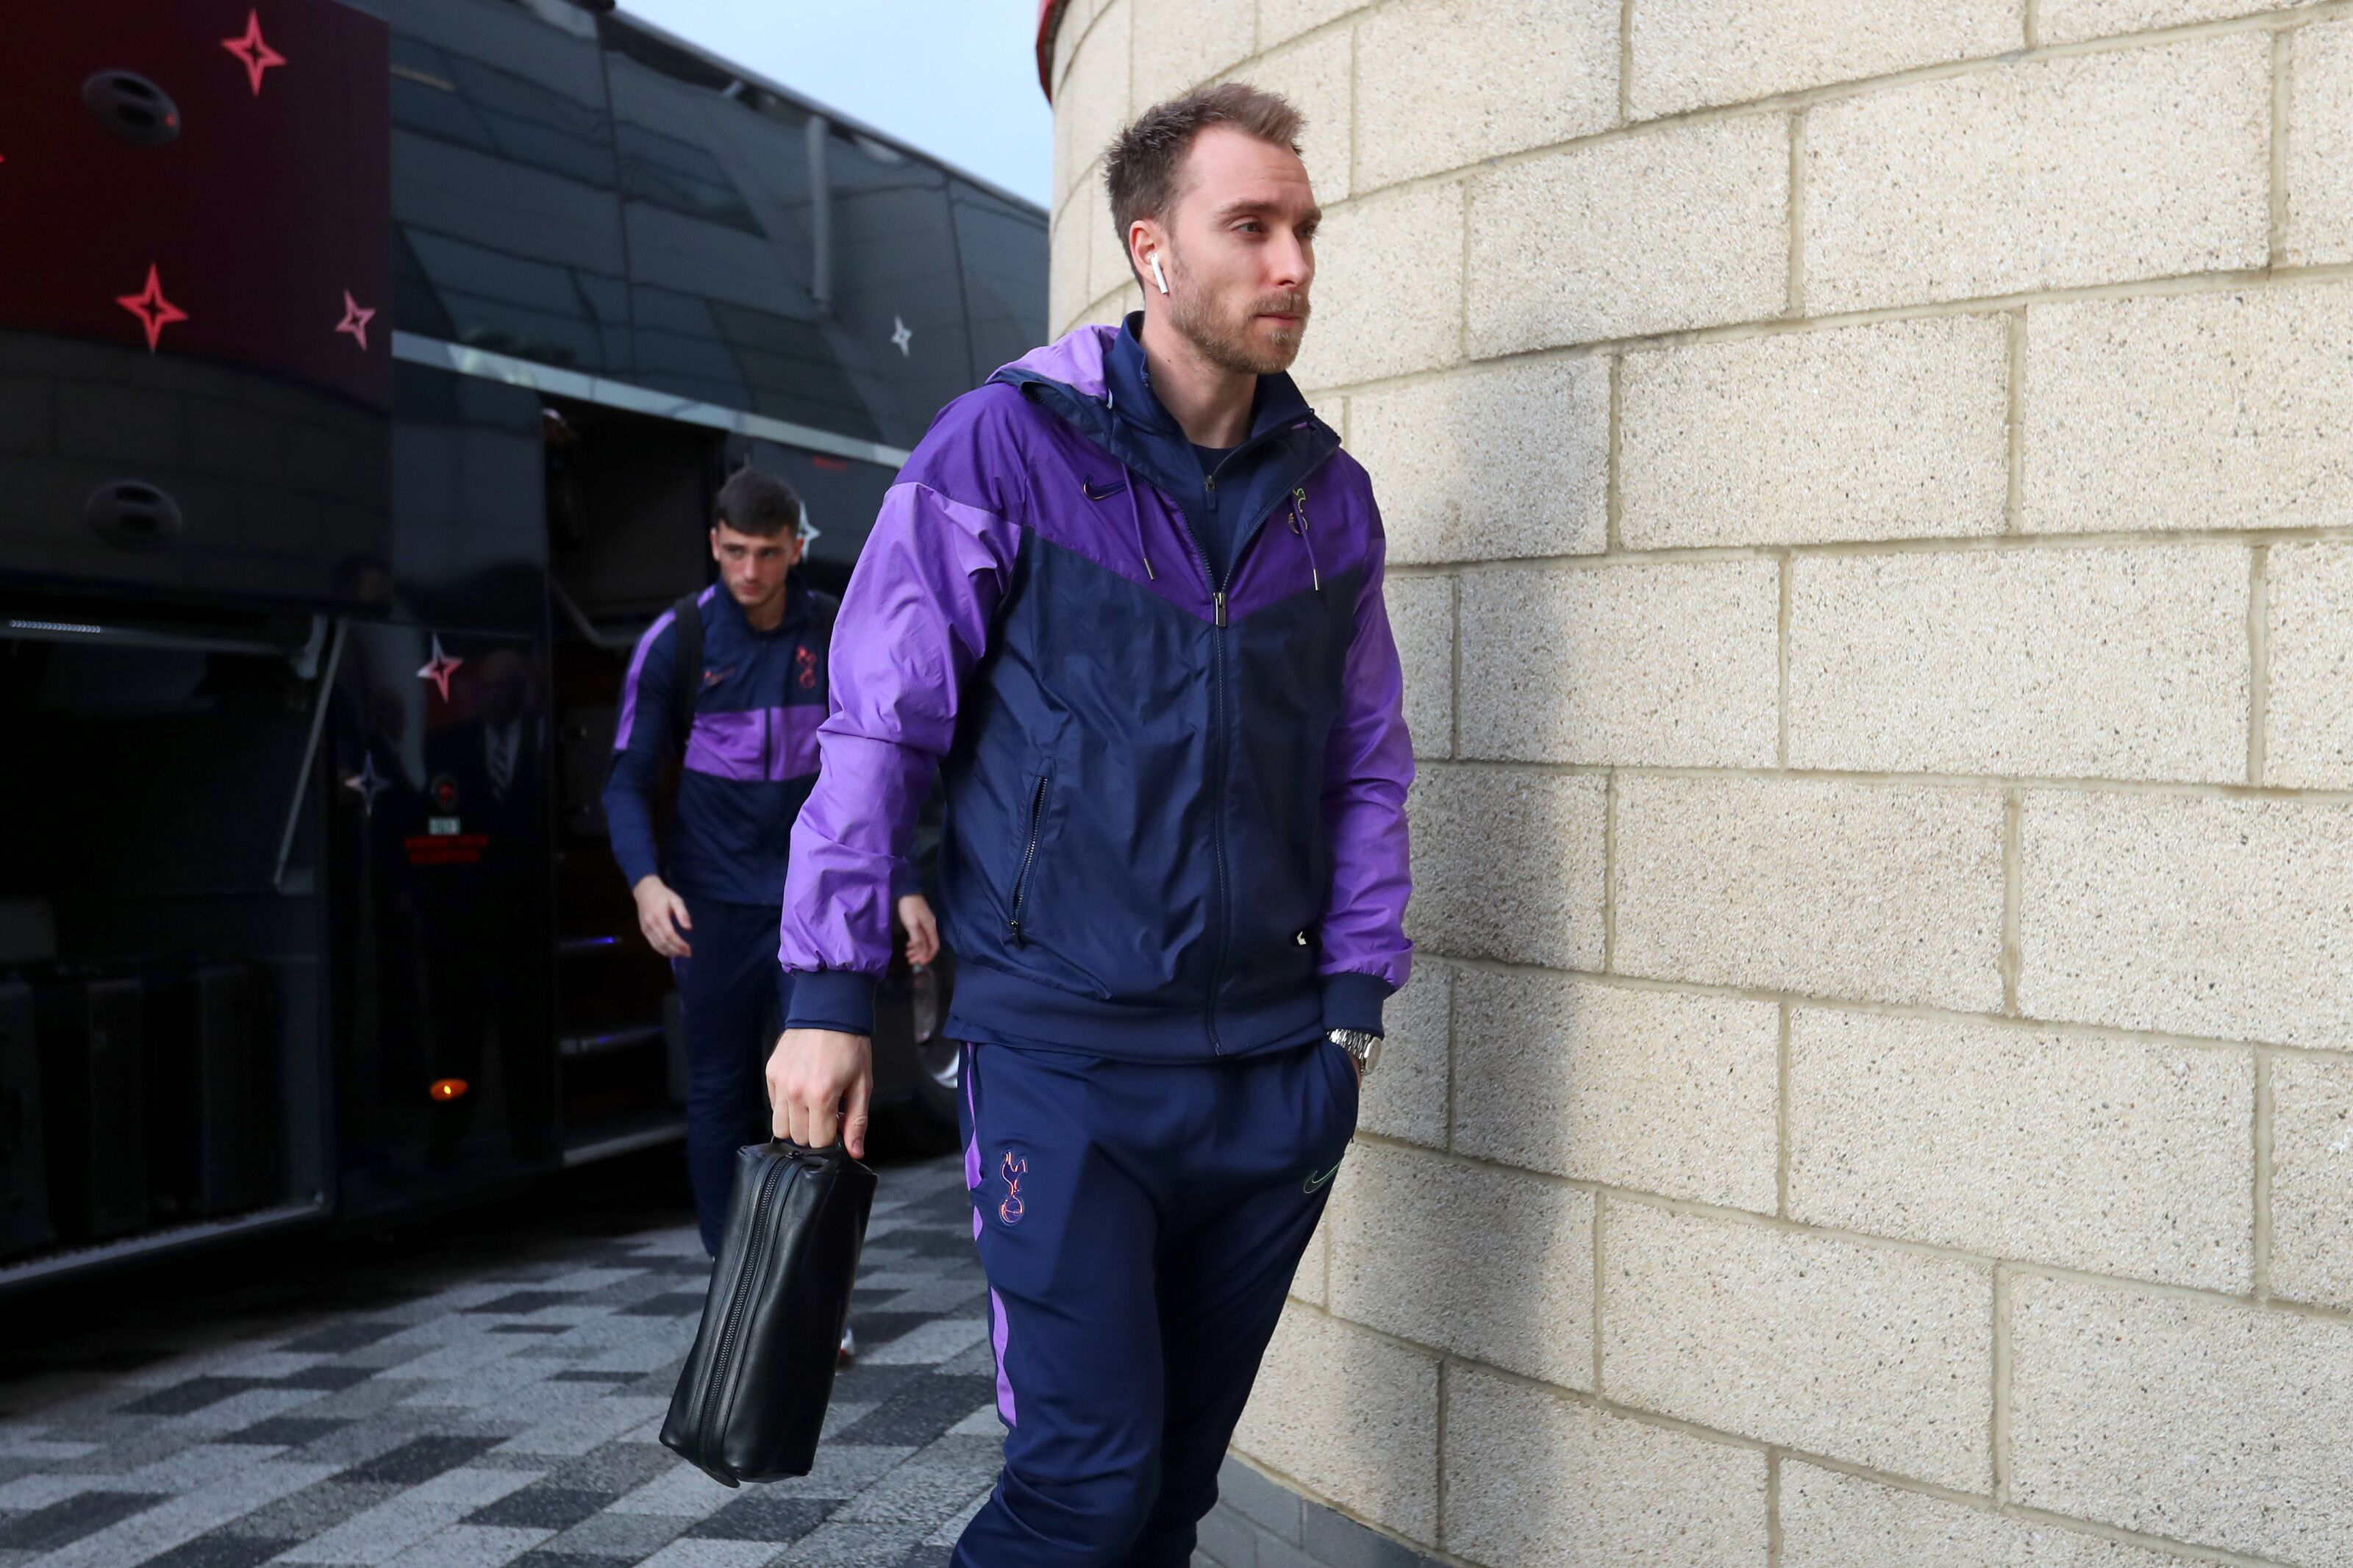 Eriksen twiddling thumbs, waiting for Tottenham to compromise on price